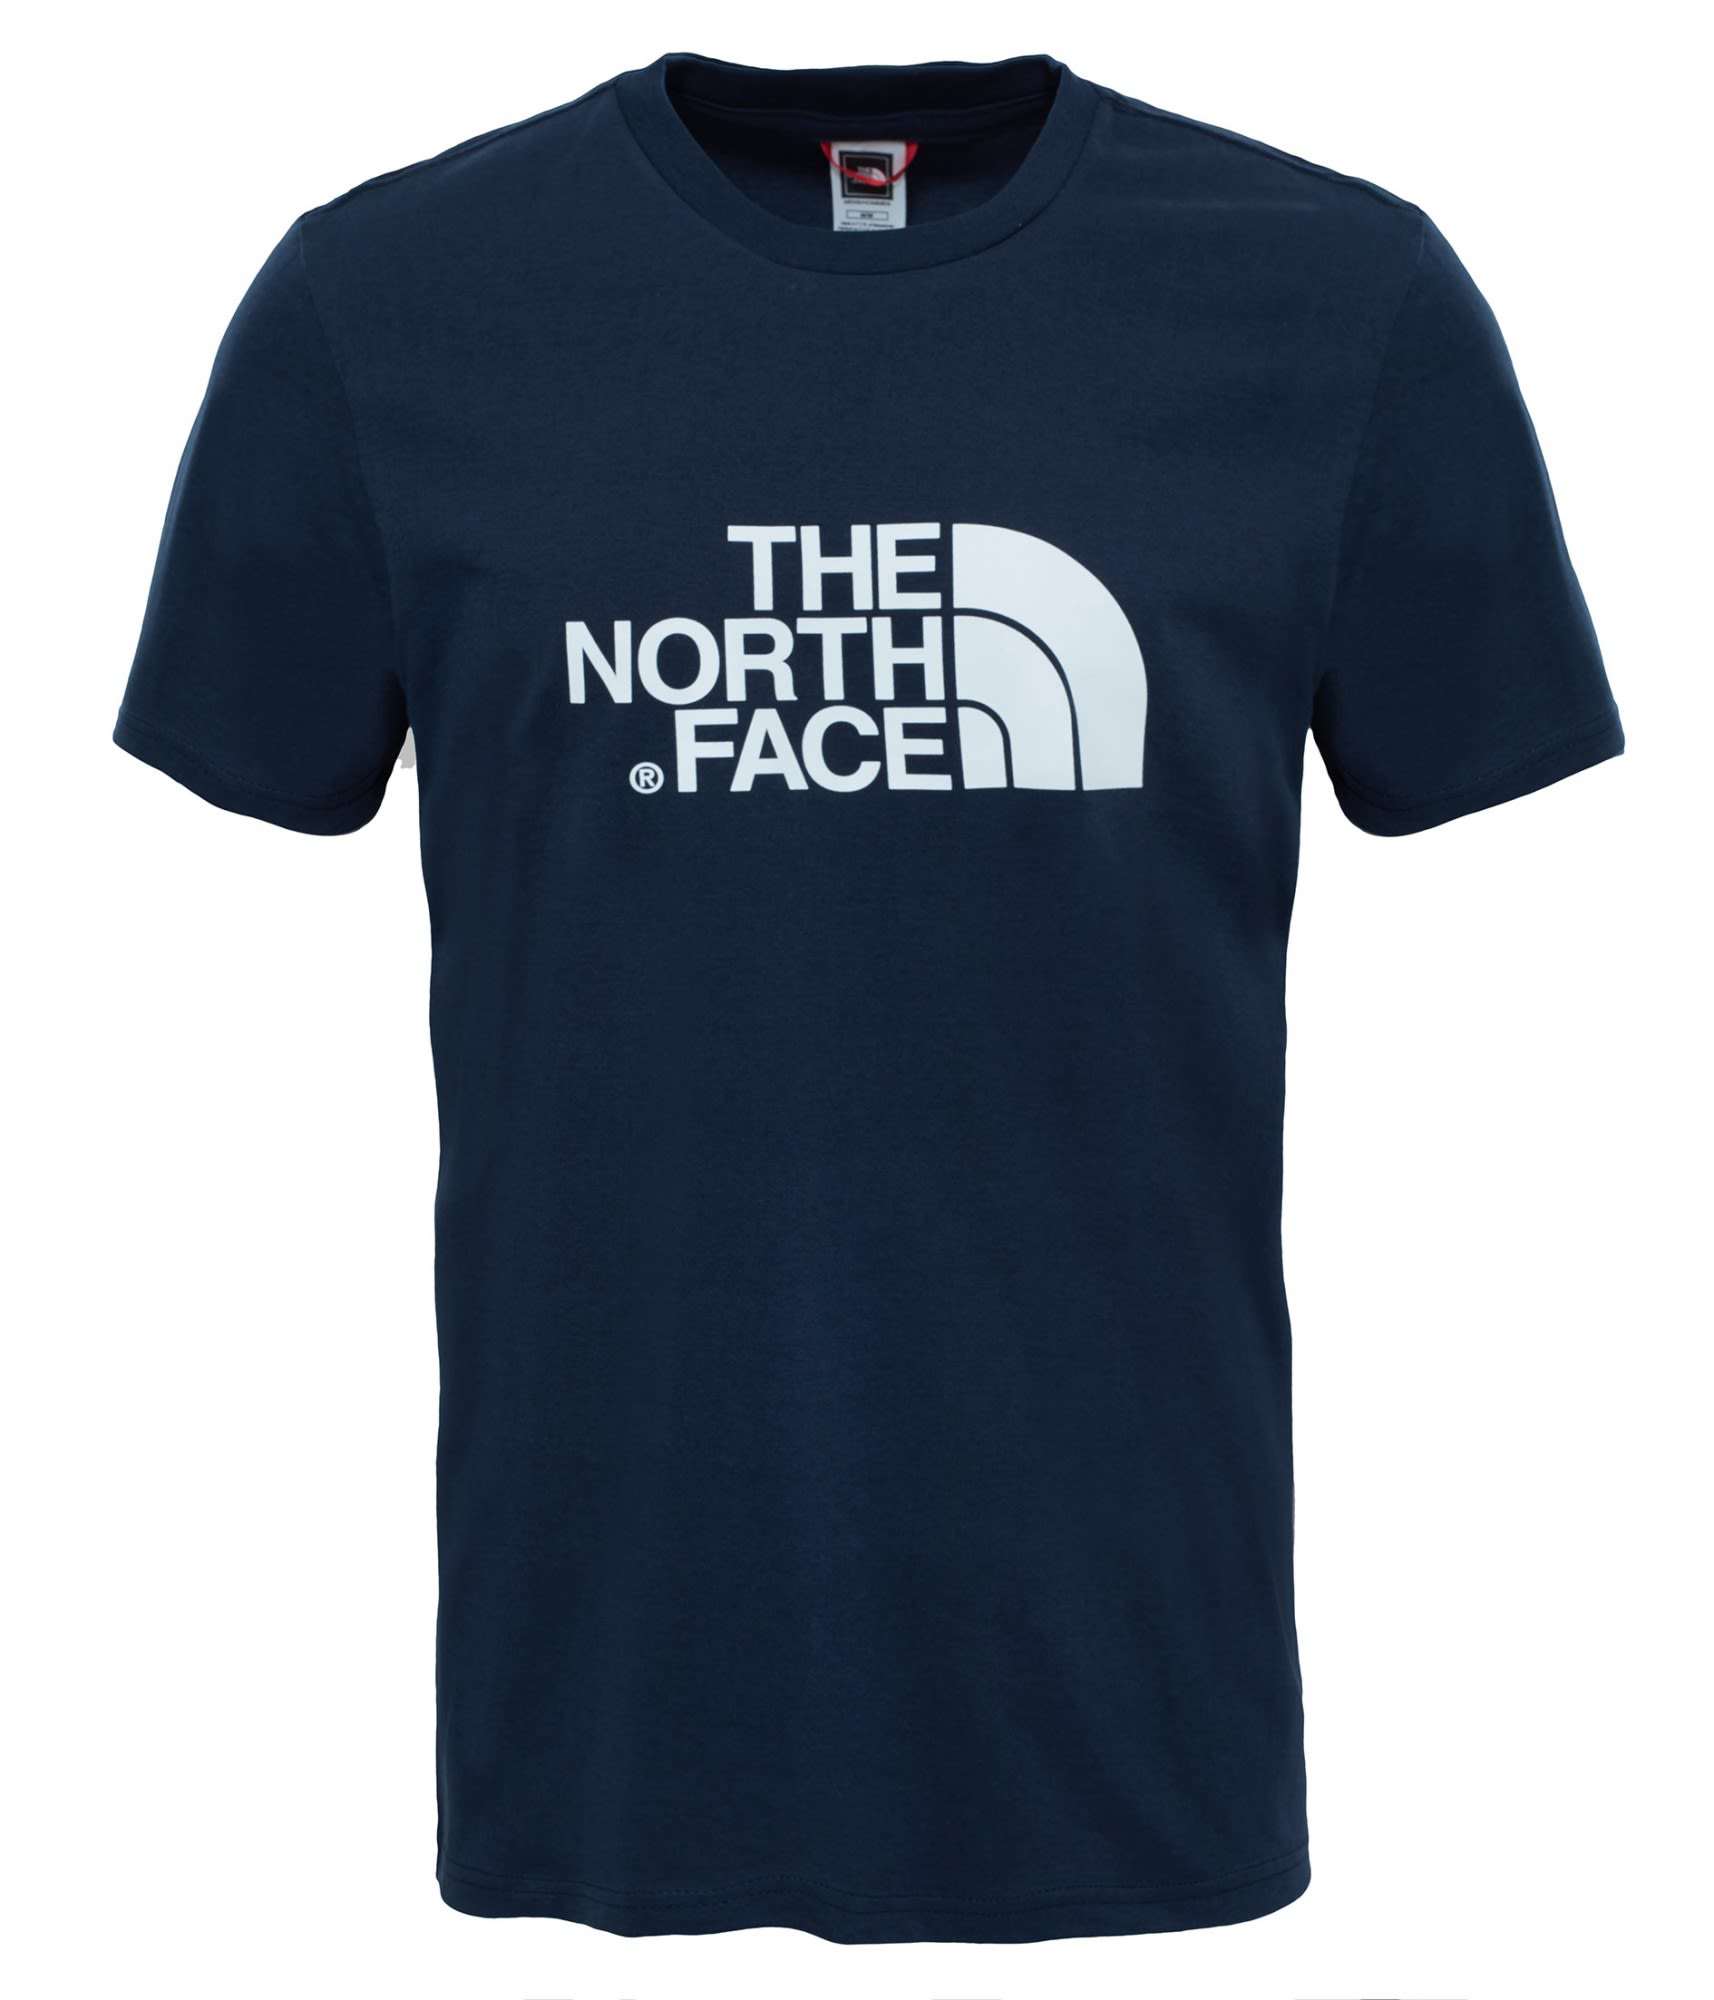 The North Face S/S Easy Tee Blau, Male Kurzarm-Shirt, S